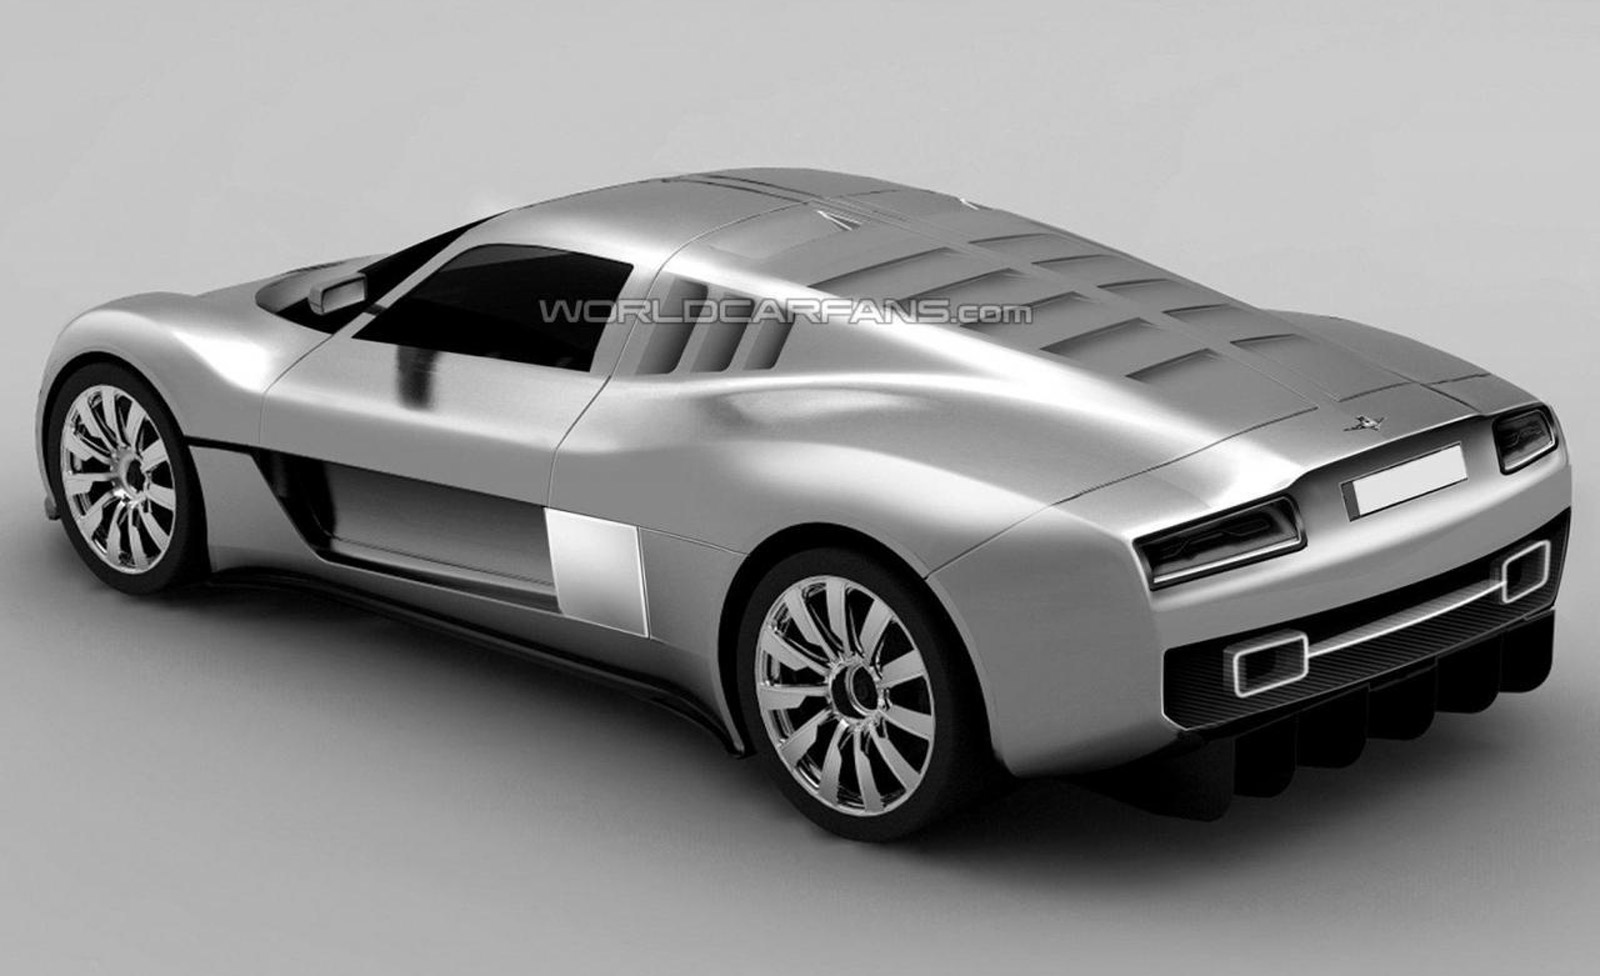 Alleged Patent Drawings Reveal Production Gumpert Tornante